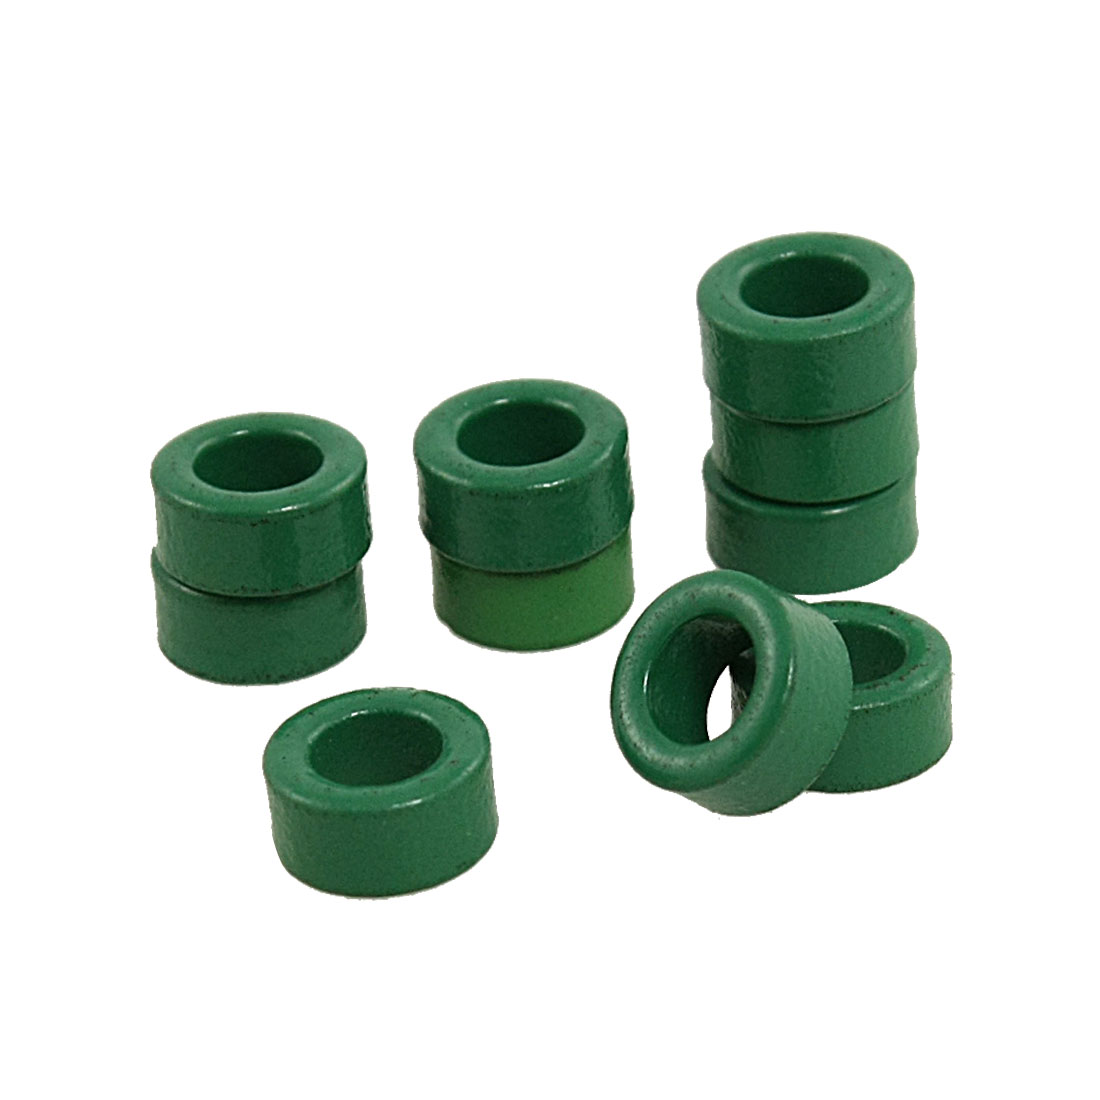 10-Pcs-Transformer-Ferrite-Toroid-Cores-Green-10mm-x-6mm-x-5mm